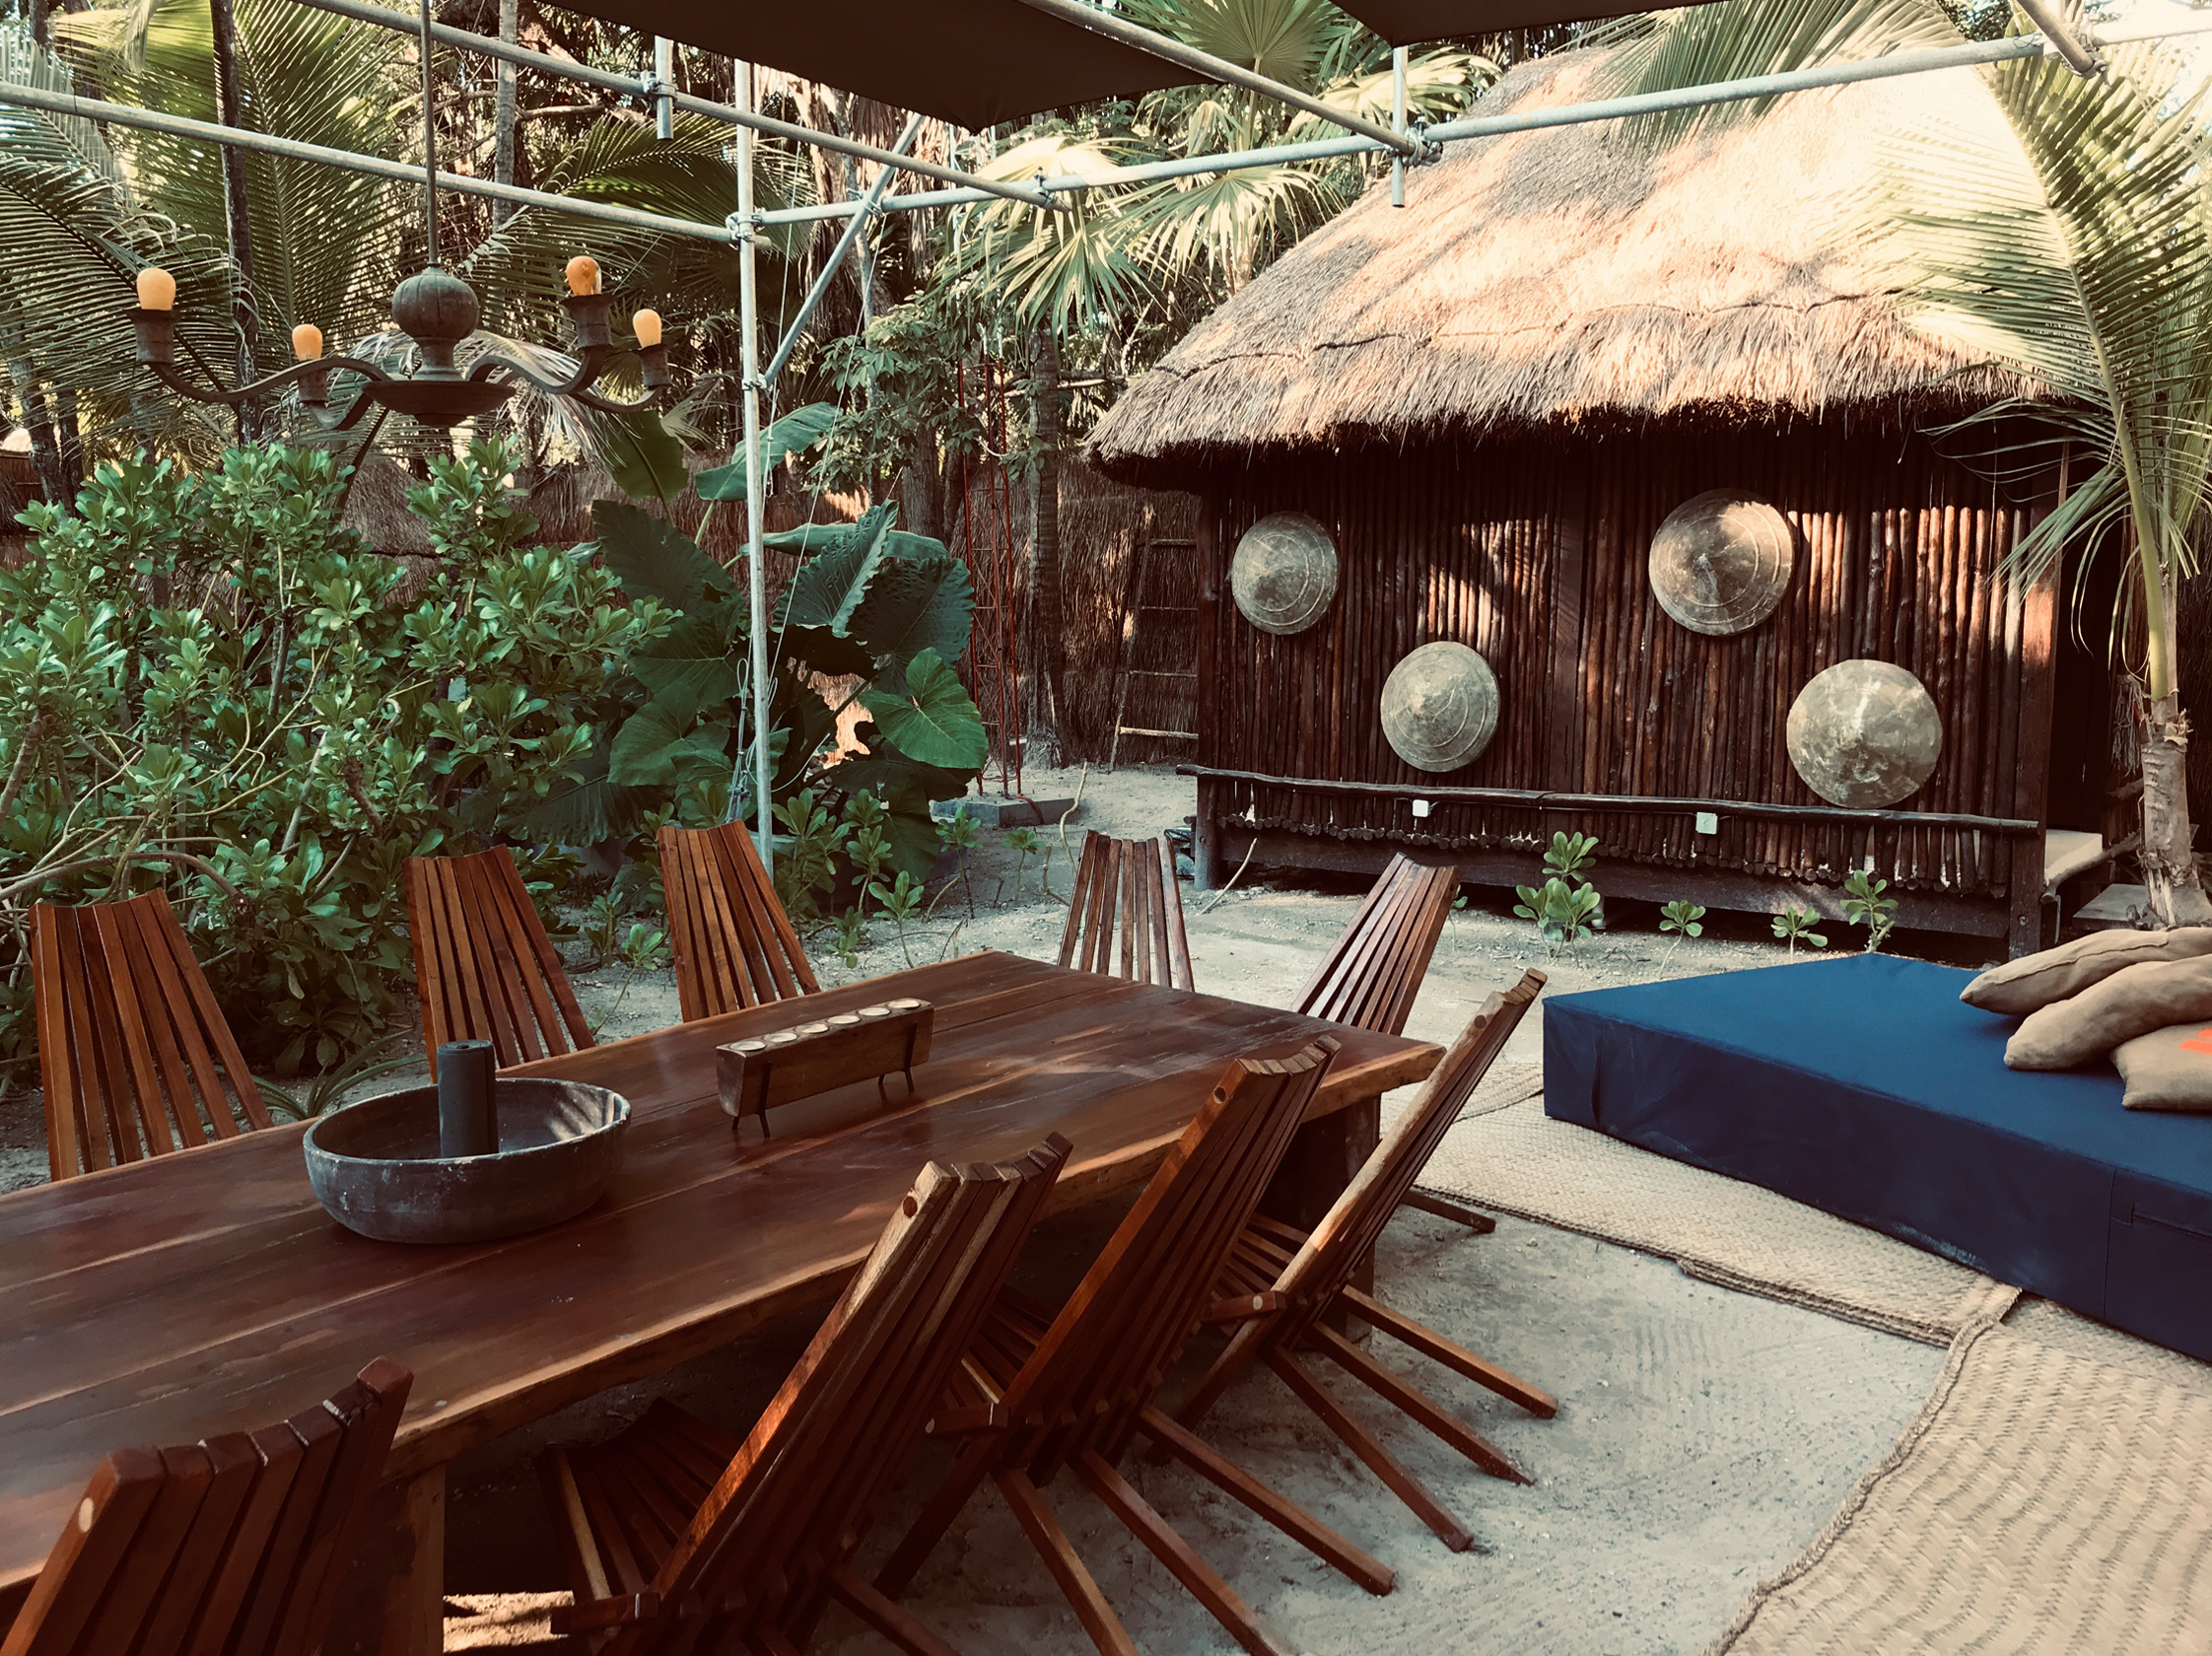 kitchen, table, chairs, sand, mat, decoration, candles, beach, rustic, palms, trees, tulu,m, libelula, glamping